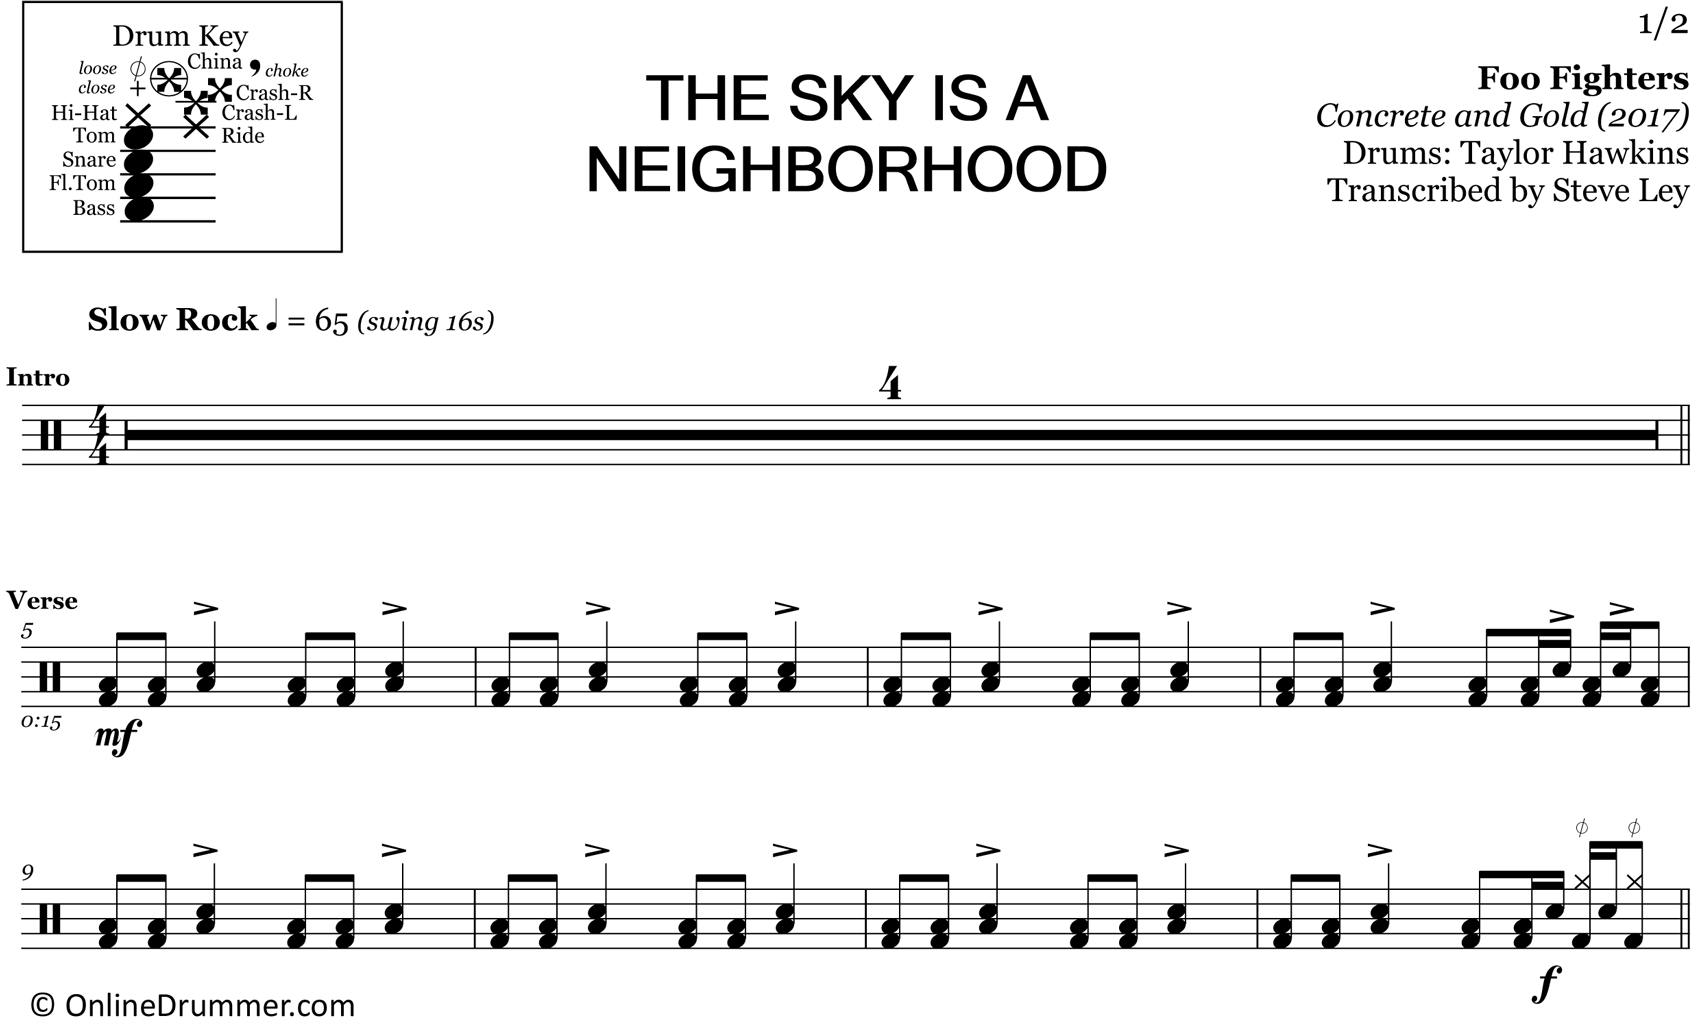 The Sky is a Neighborhood - Foo Fighters - Drum Sheet Music